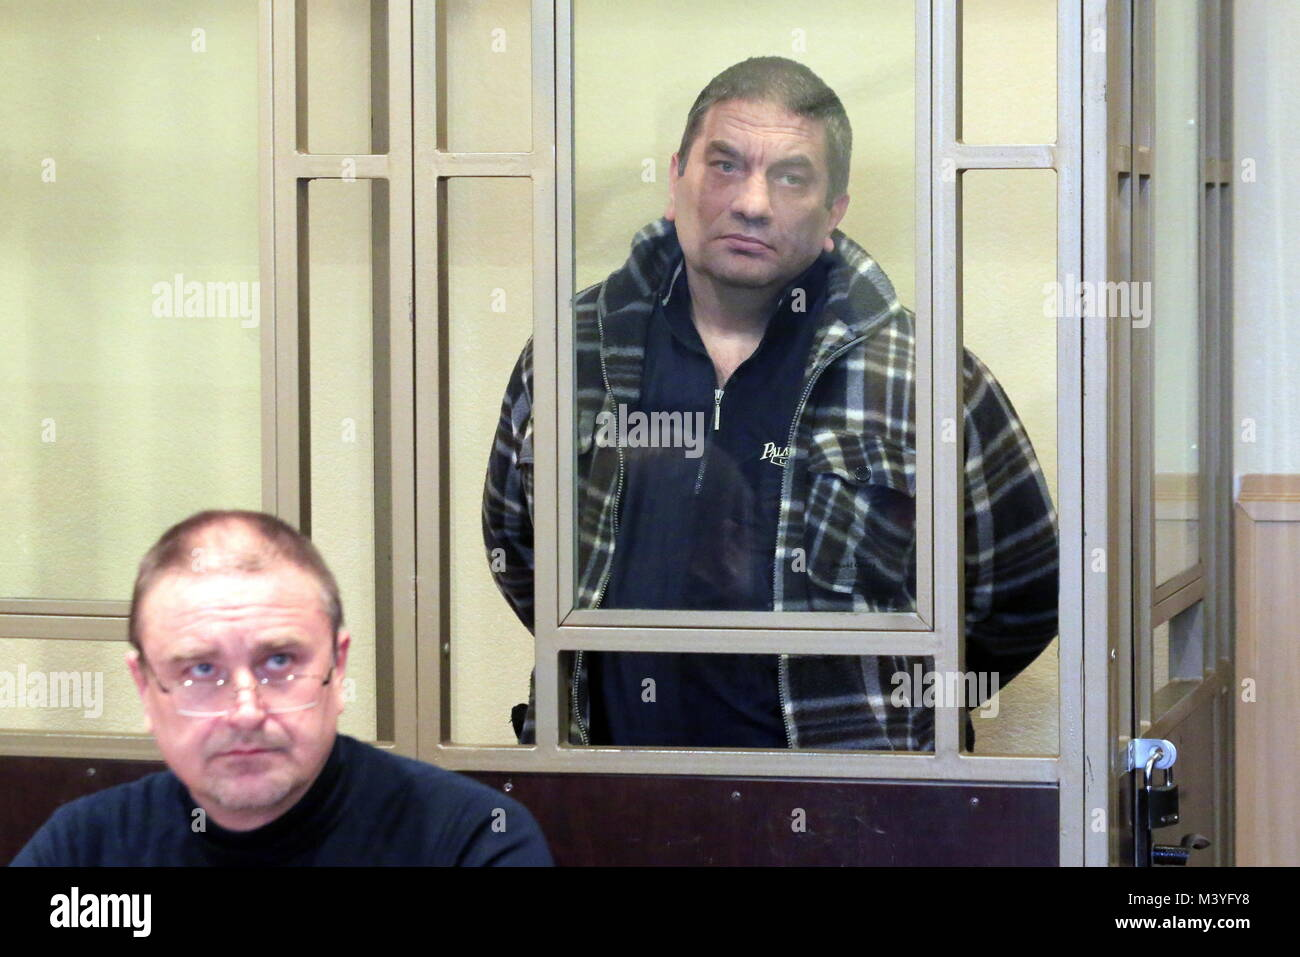 Rostov On Don, Russia. 13th Feb, 2018. ROSTOV-ON-DON, RUSSIA - FEBRUARY 13, 2018: Badruddi Daudov (R) charged with - Stock Image